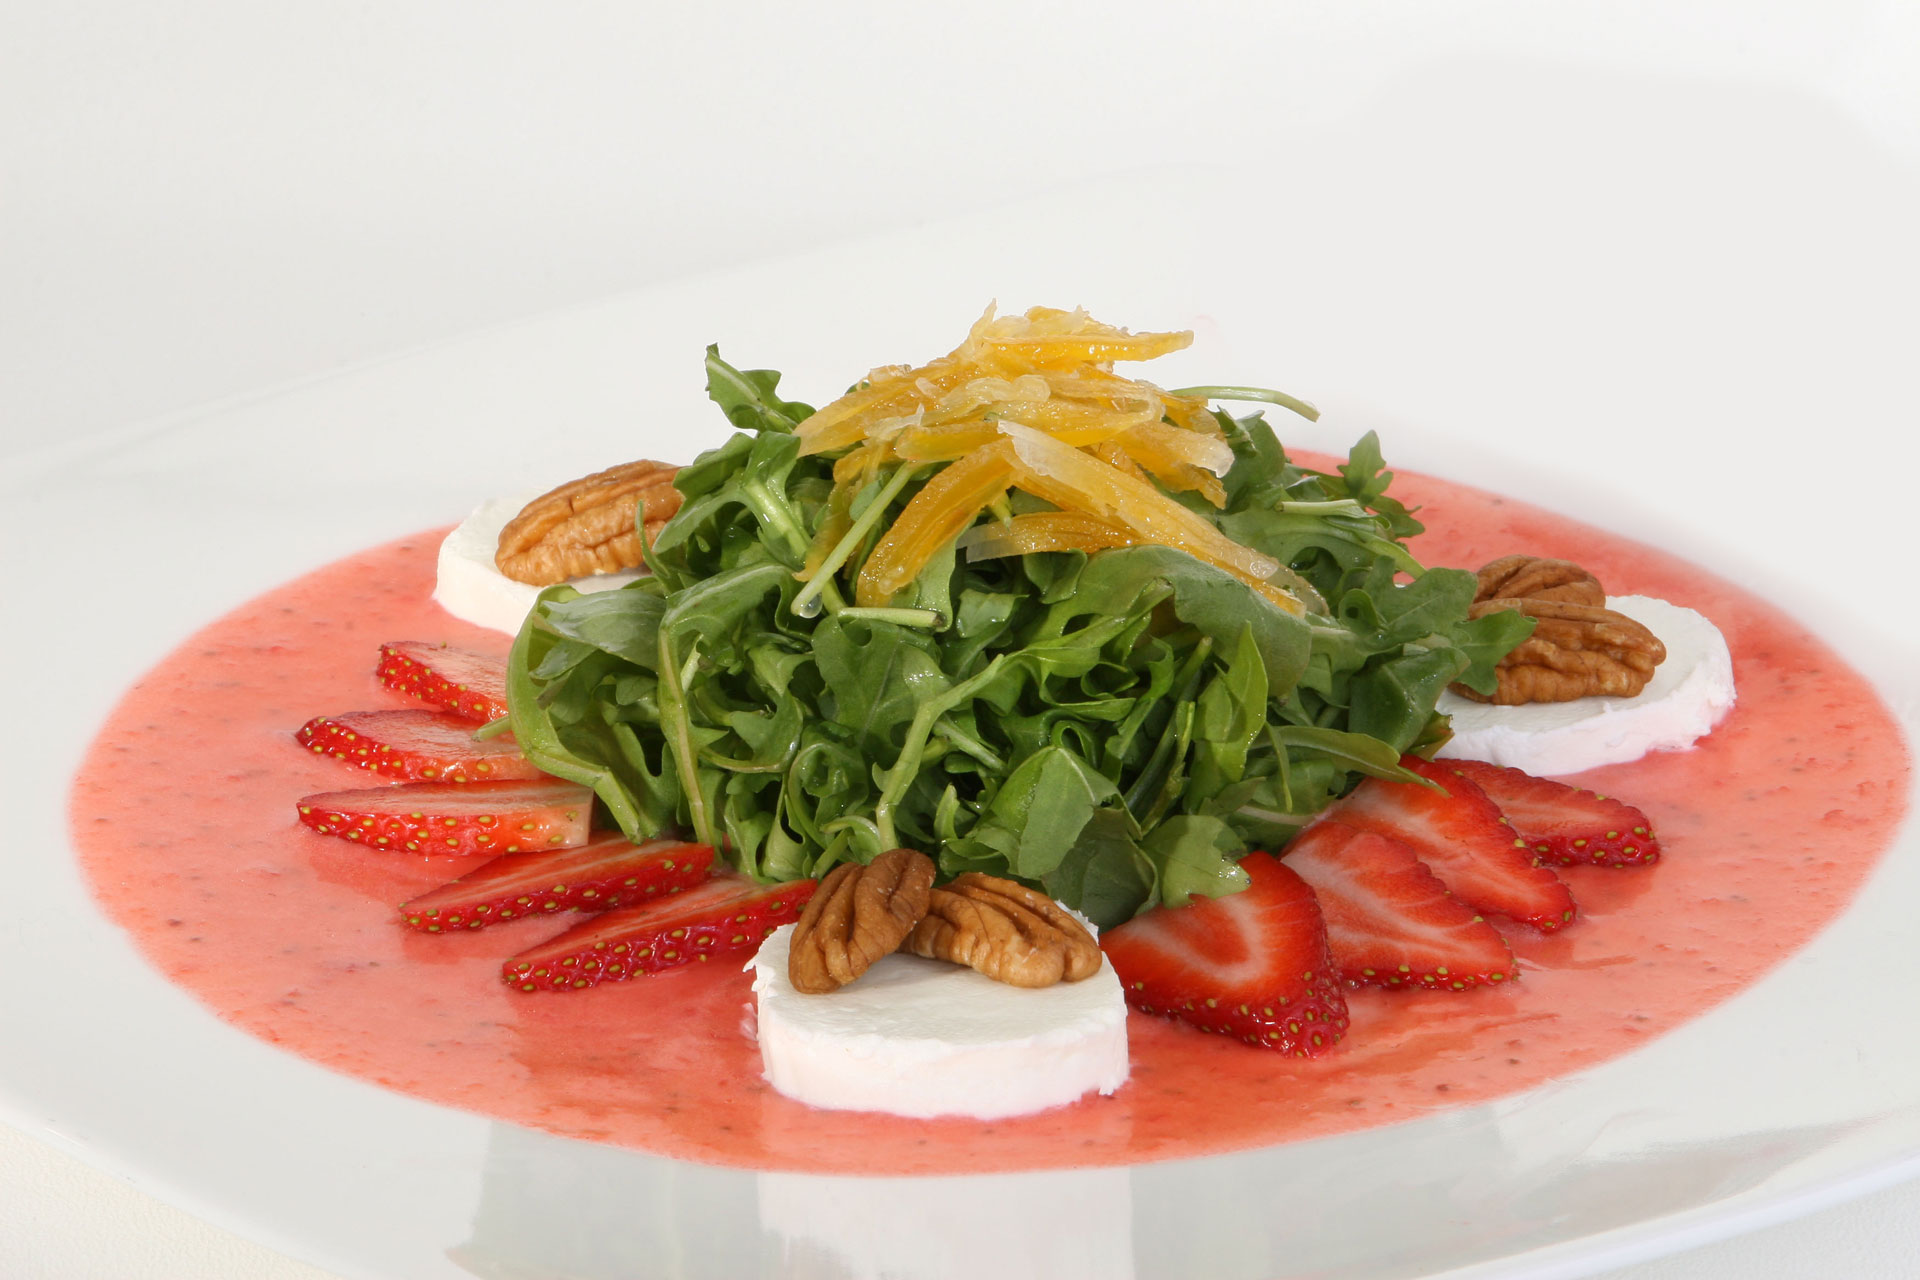 Florida-Winter-Strawberry-Salad-with-Pecans-Goat-Cheese